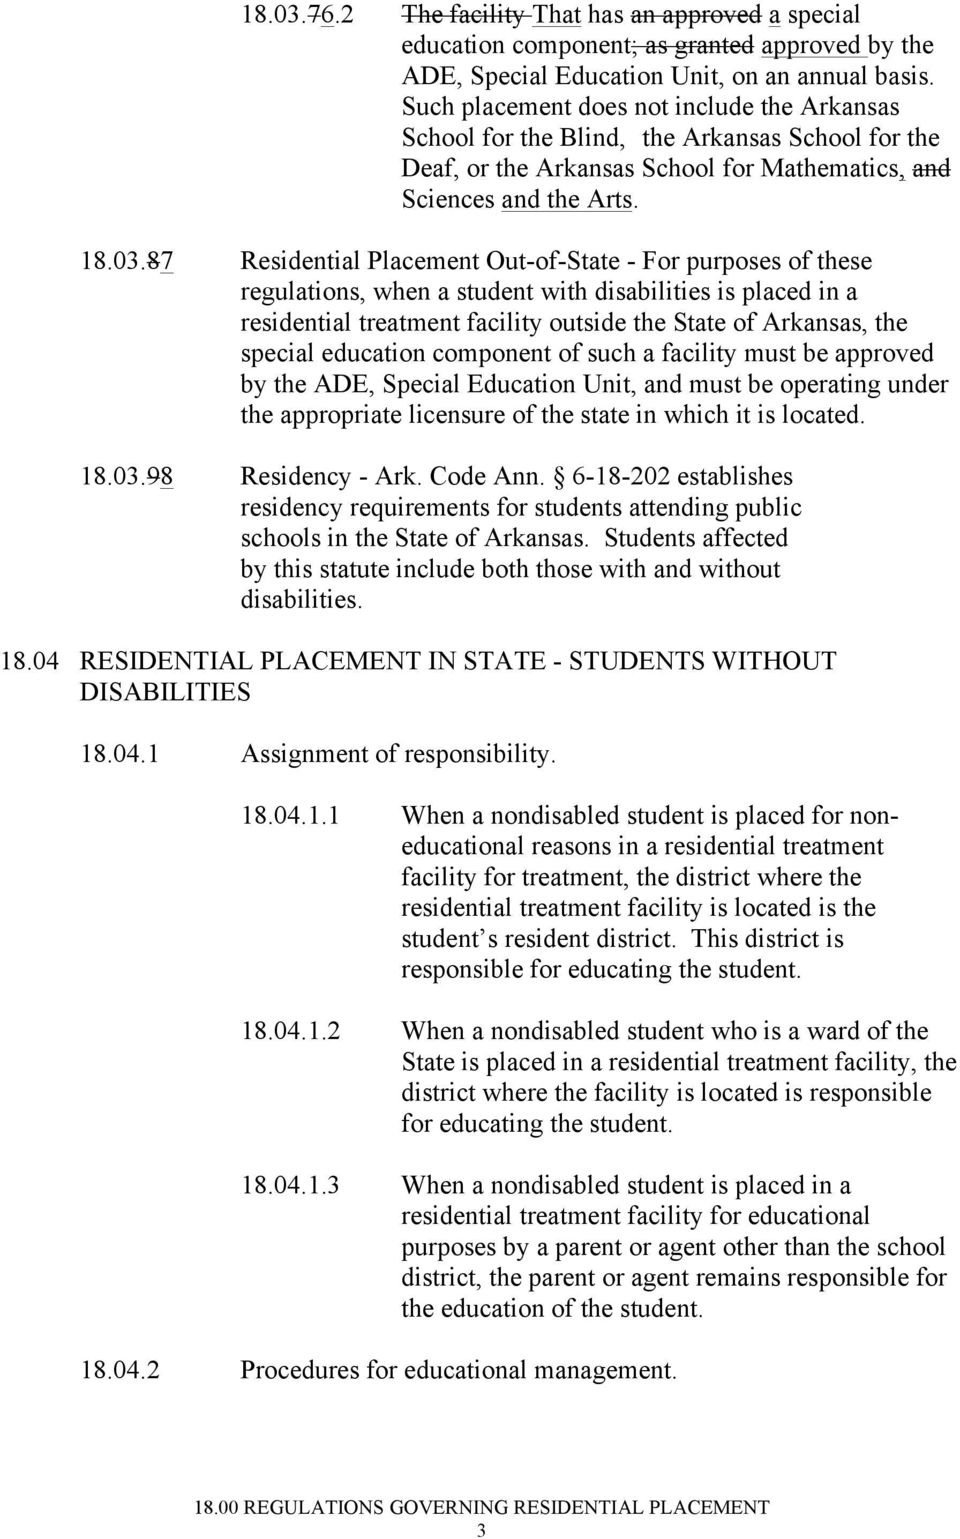 87 Residential Placement Out-of-State - For purposes of these regulations, when a student with disabilities is placed in a residential treatment facility outside the State of Arkansas, the special